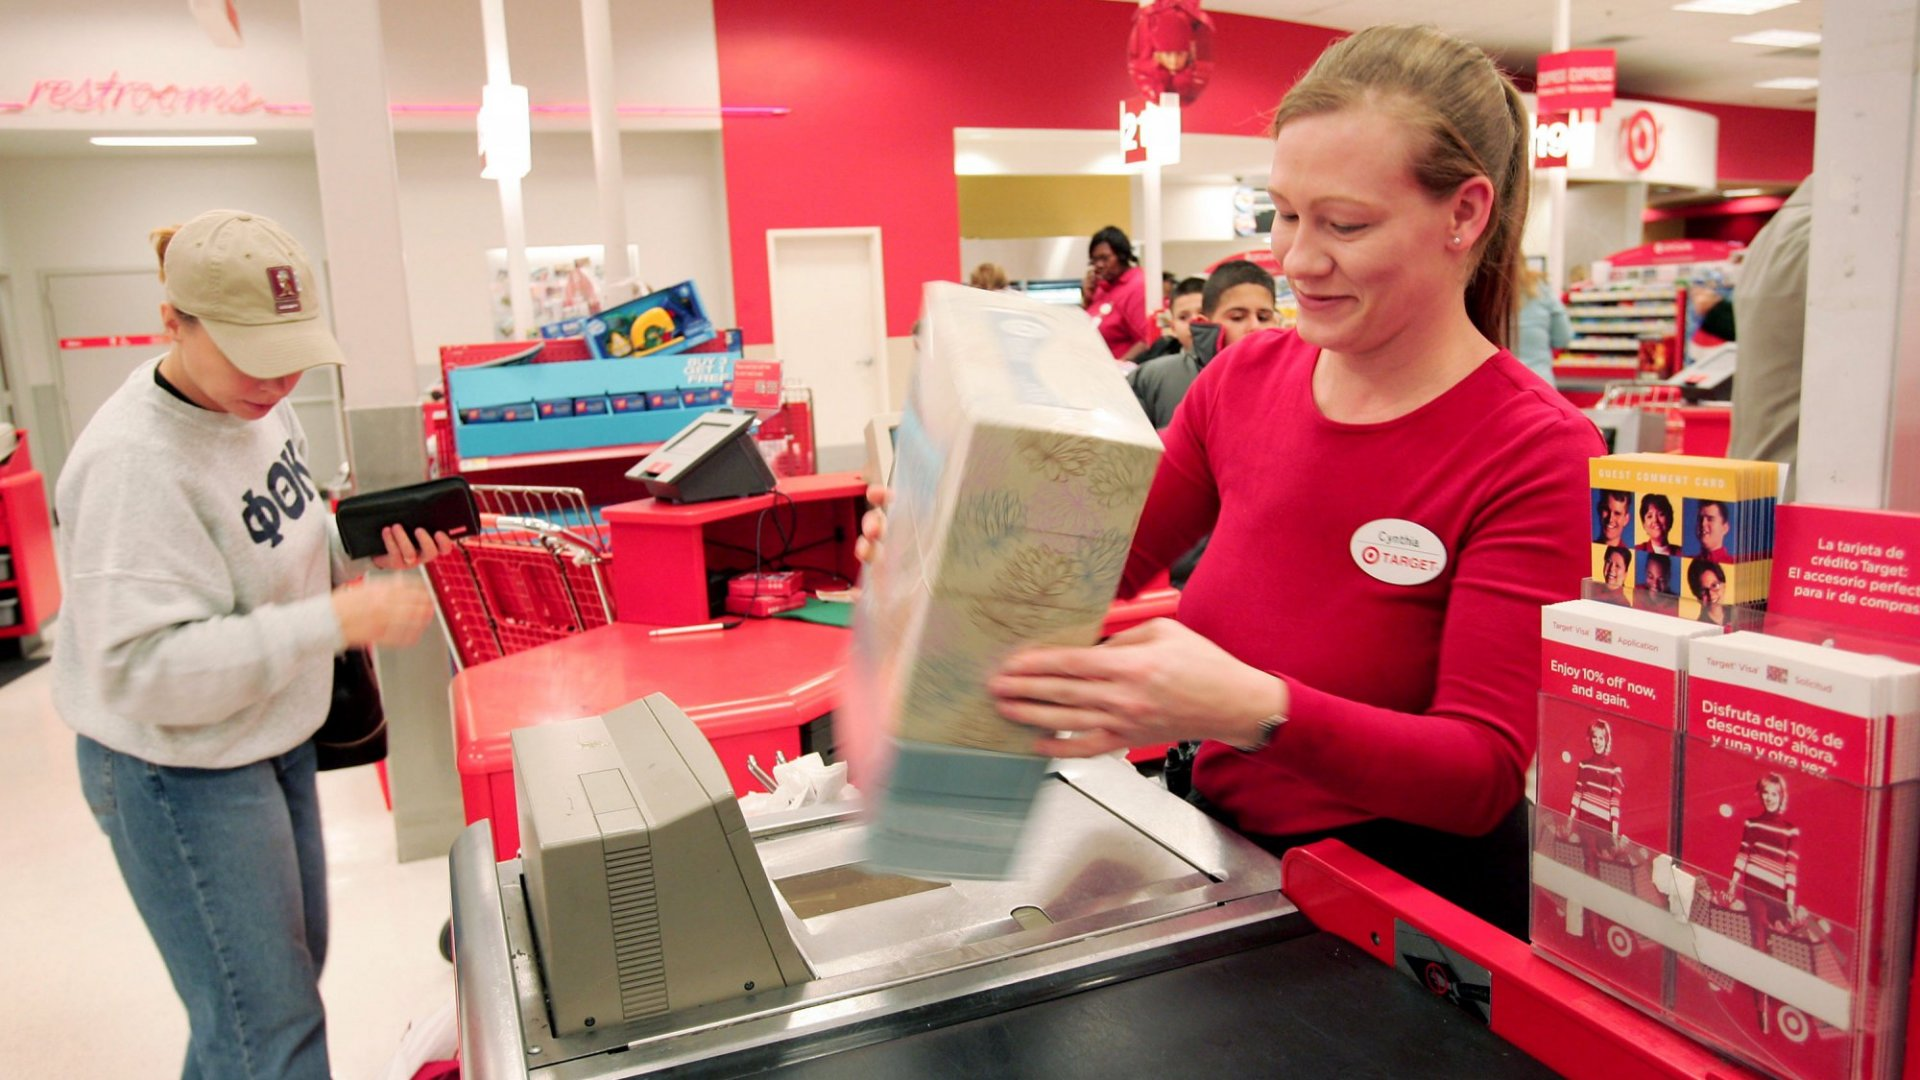 Target Is Spending an Extra $50 Million on Payroll for the Holidays. Here's Why You Should Be Preparing Your Team Now